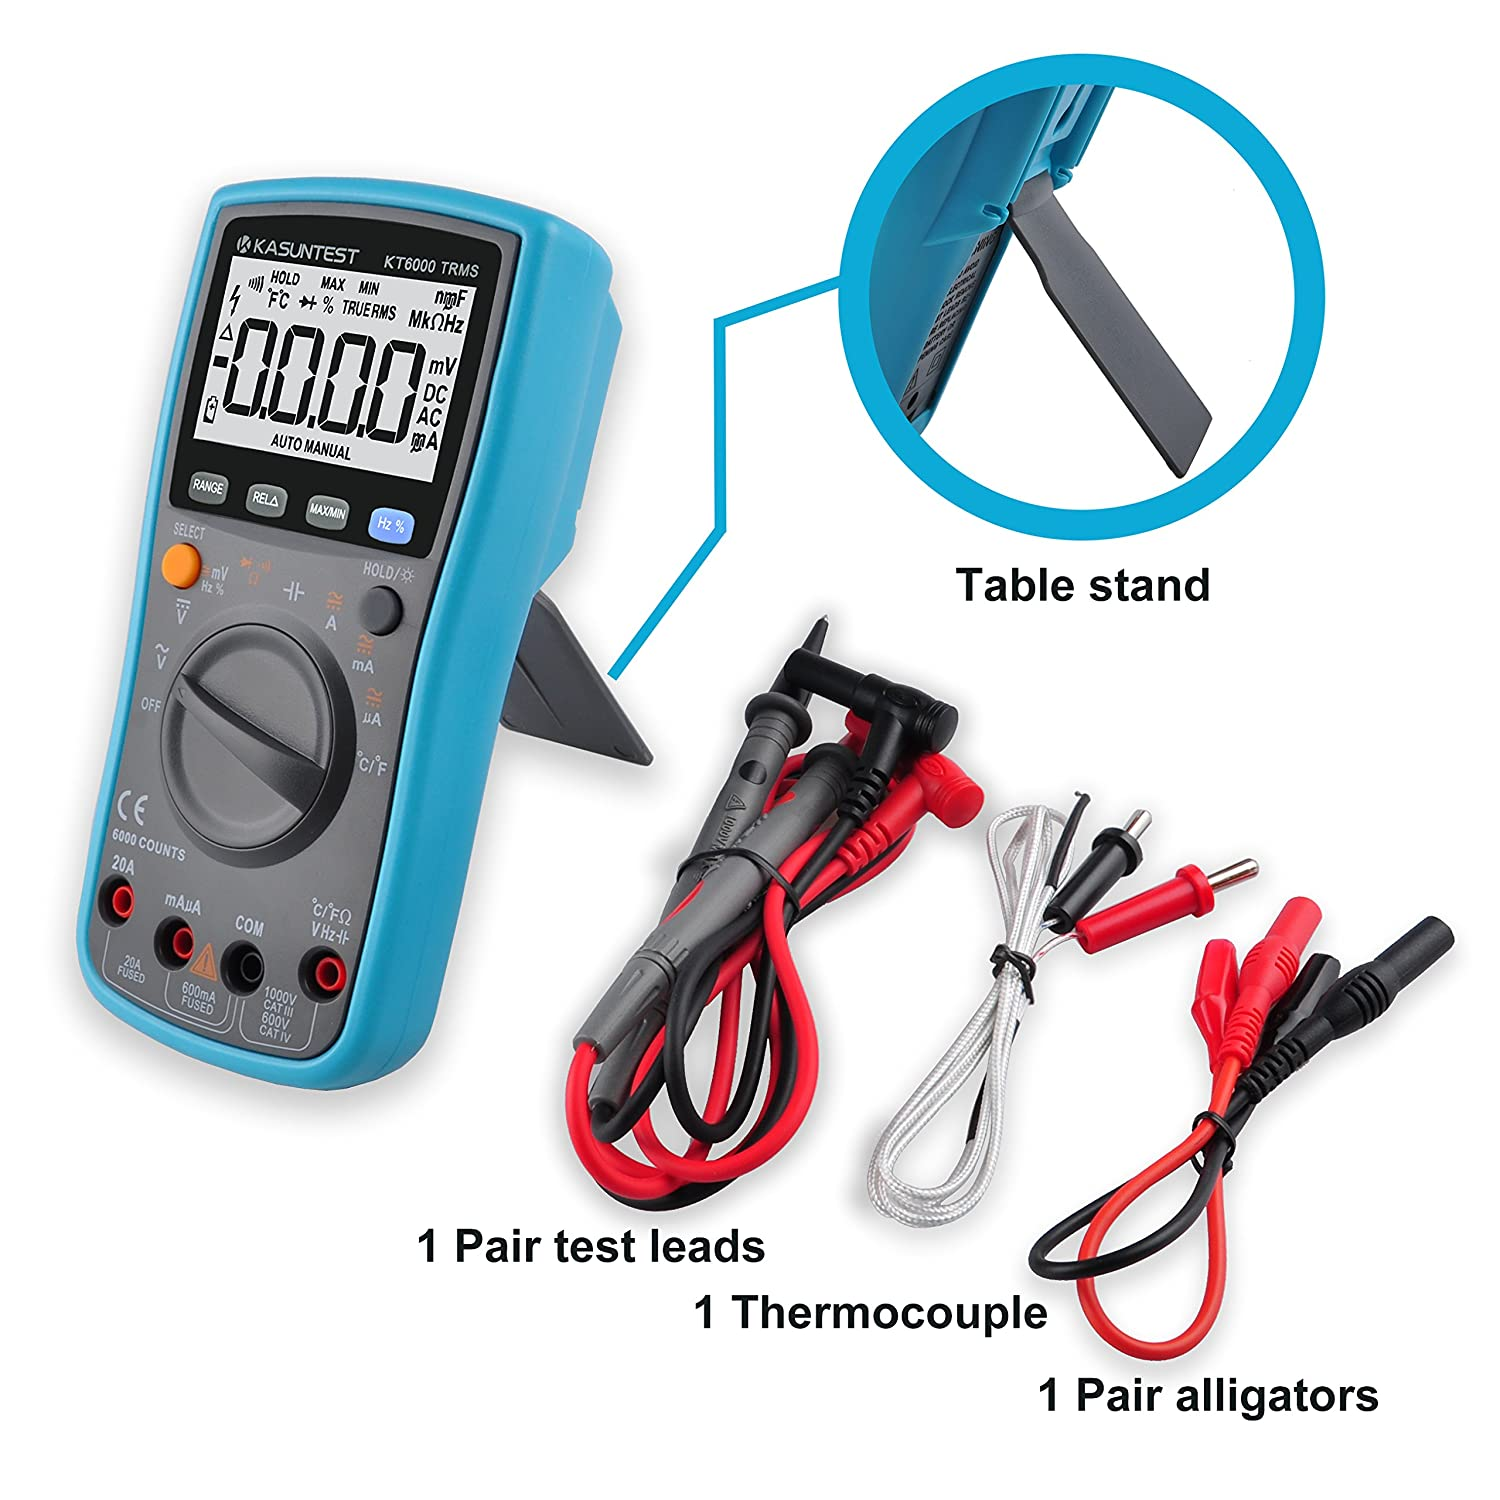 Kasuntest 6000 Counts Trms Auto Ranging Digital Multimeter With How To Test Car Fuse Box Capacitance Resistance Hz Duty Cycle Temp Ac Dc Voltage Current Transistor Diode Buzzer